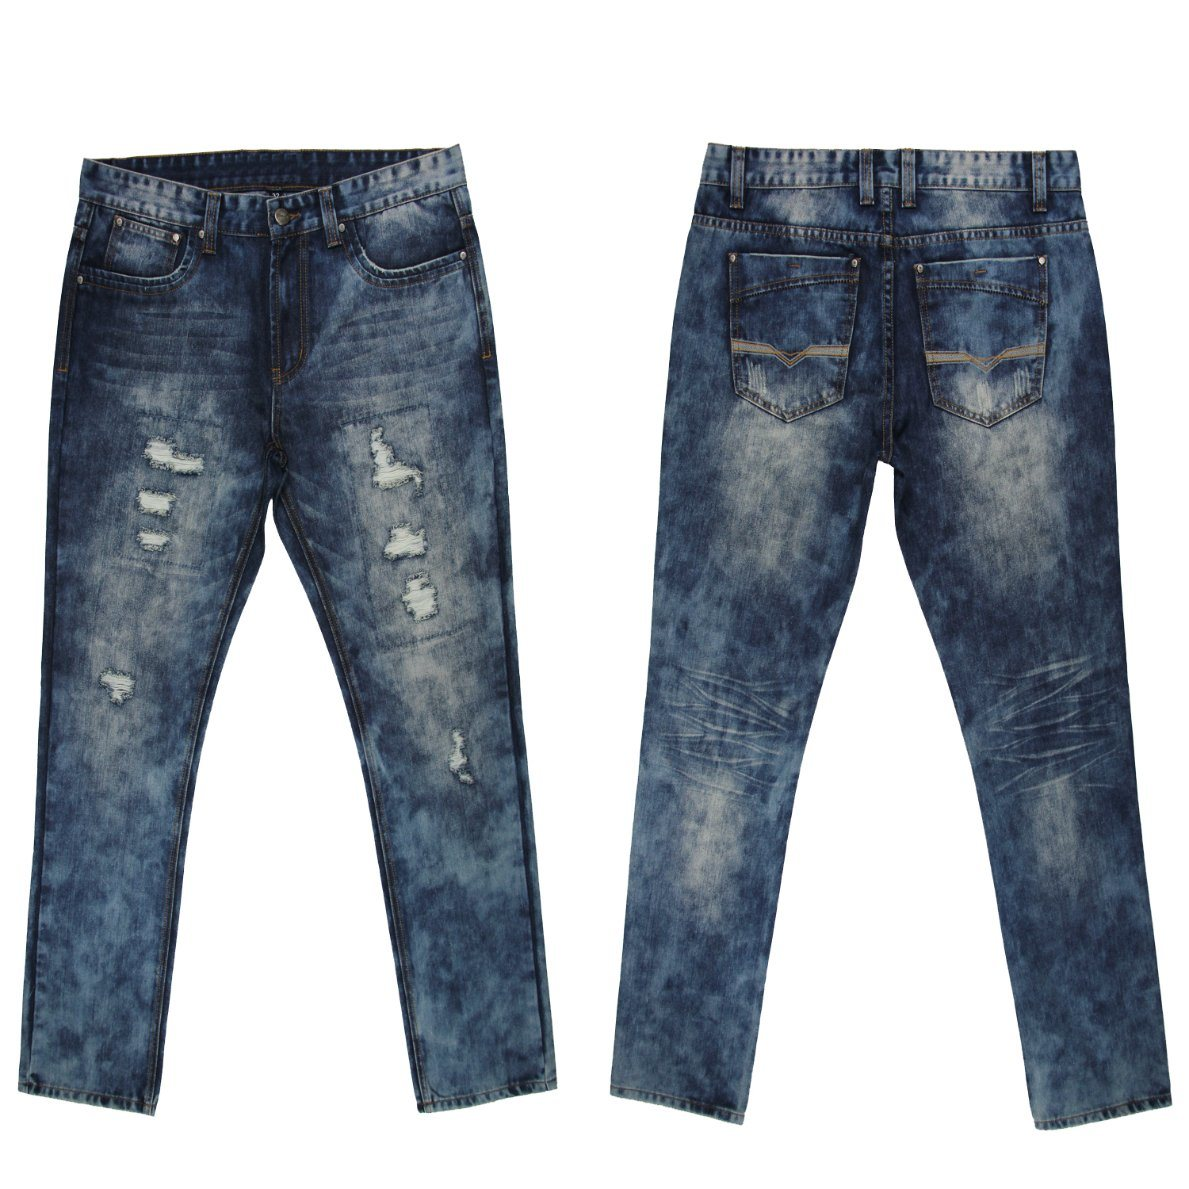 Top Sale Latest Design 2017 Summer Men′s Jeans (MYX10)